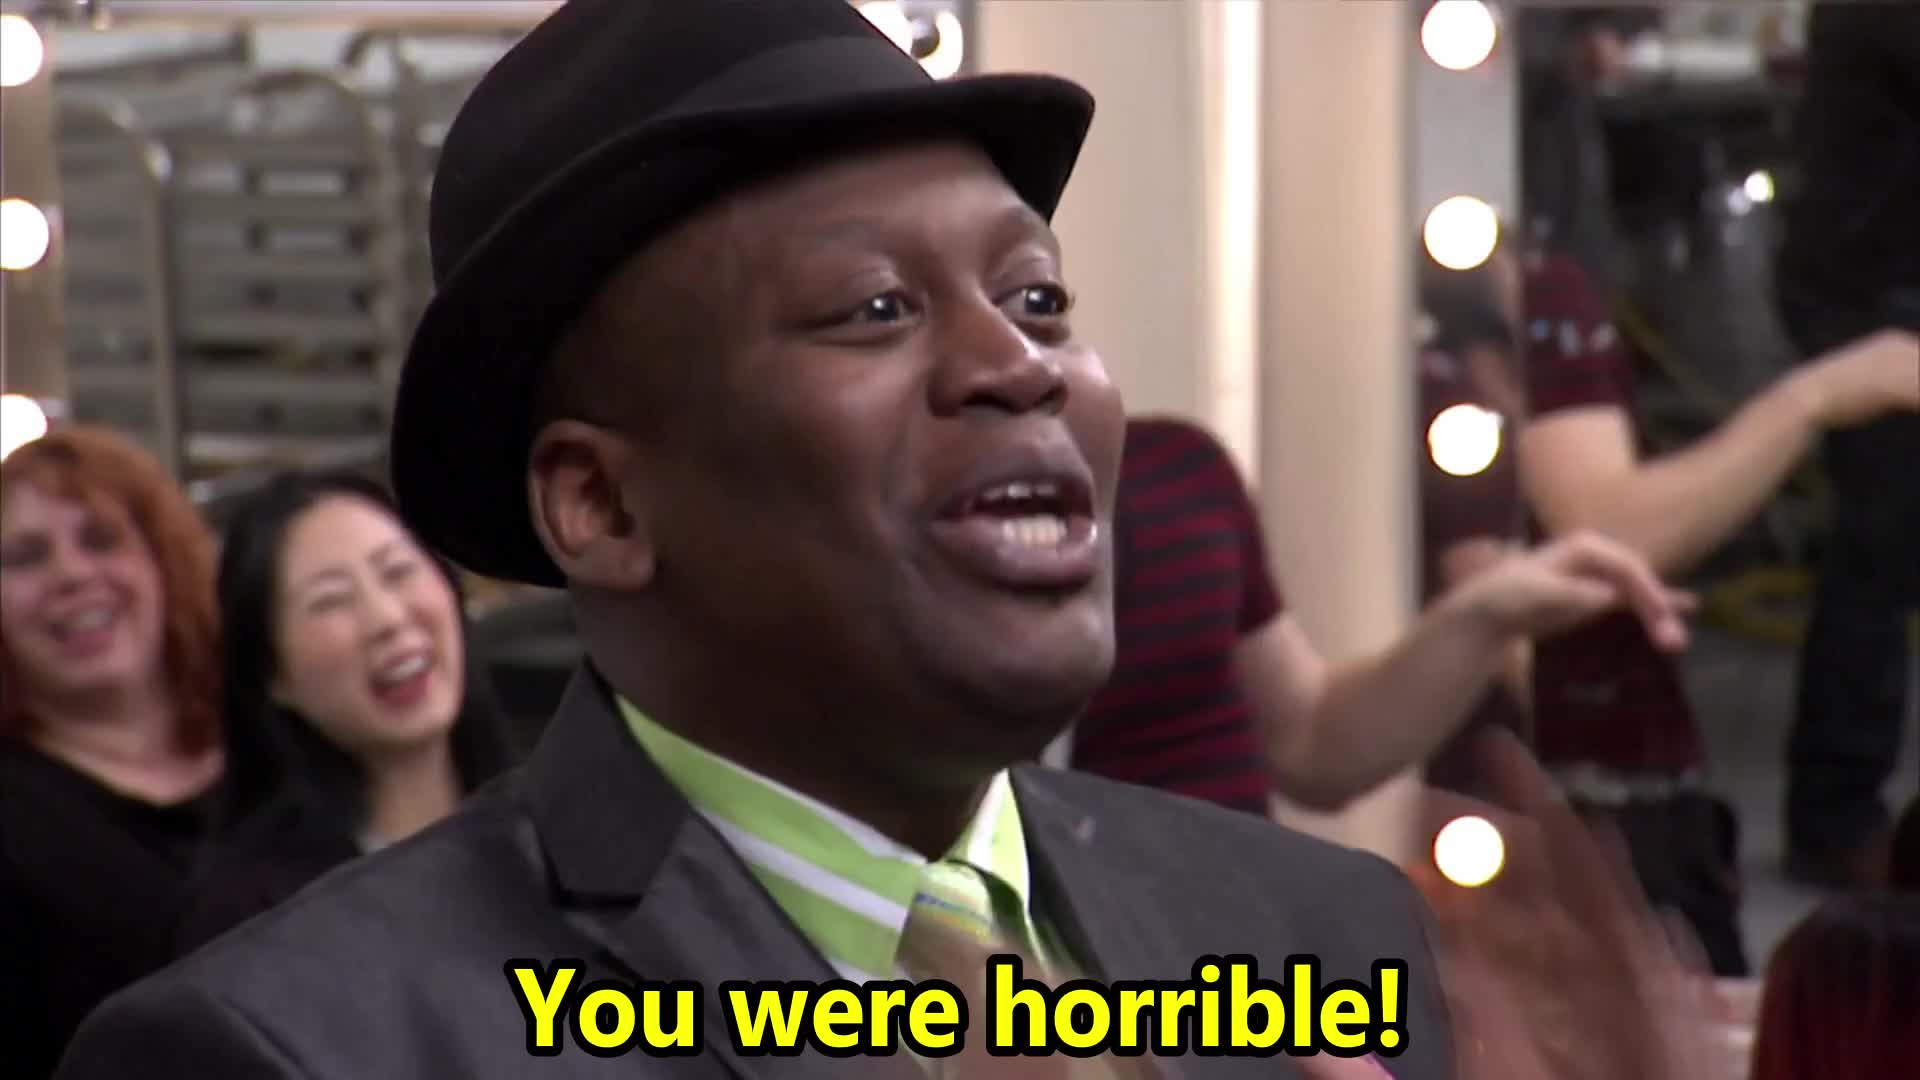 30 rock, bad, d'fwan, horrible, jordan, of, queen, s06e20, were, you, You were horrible! GIFs